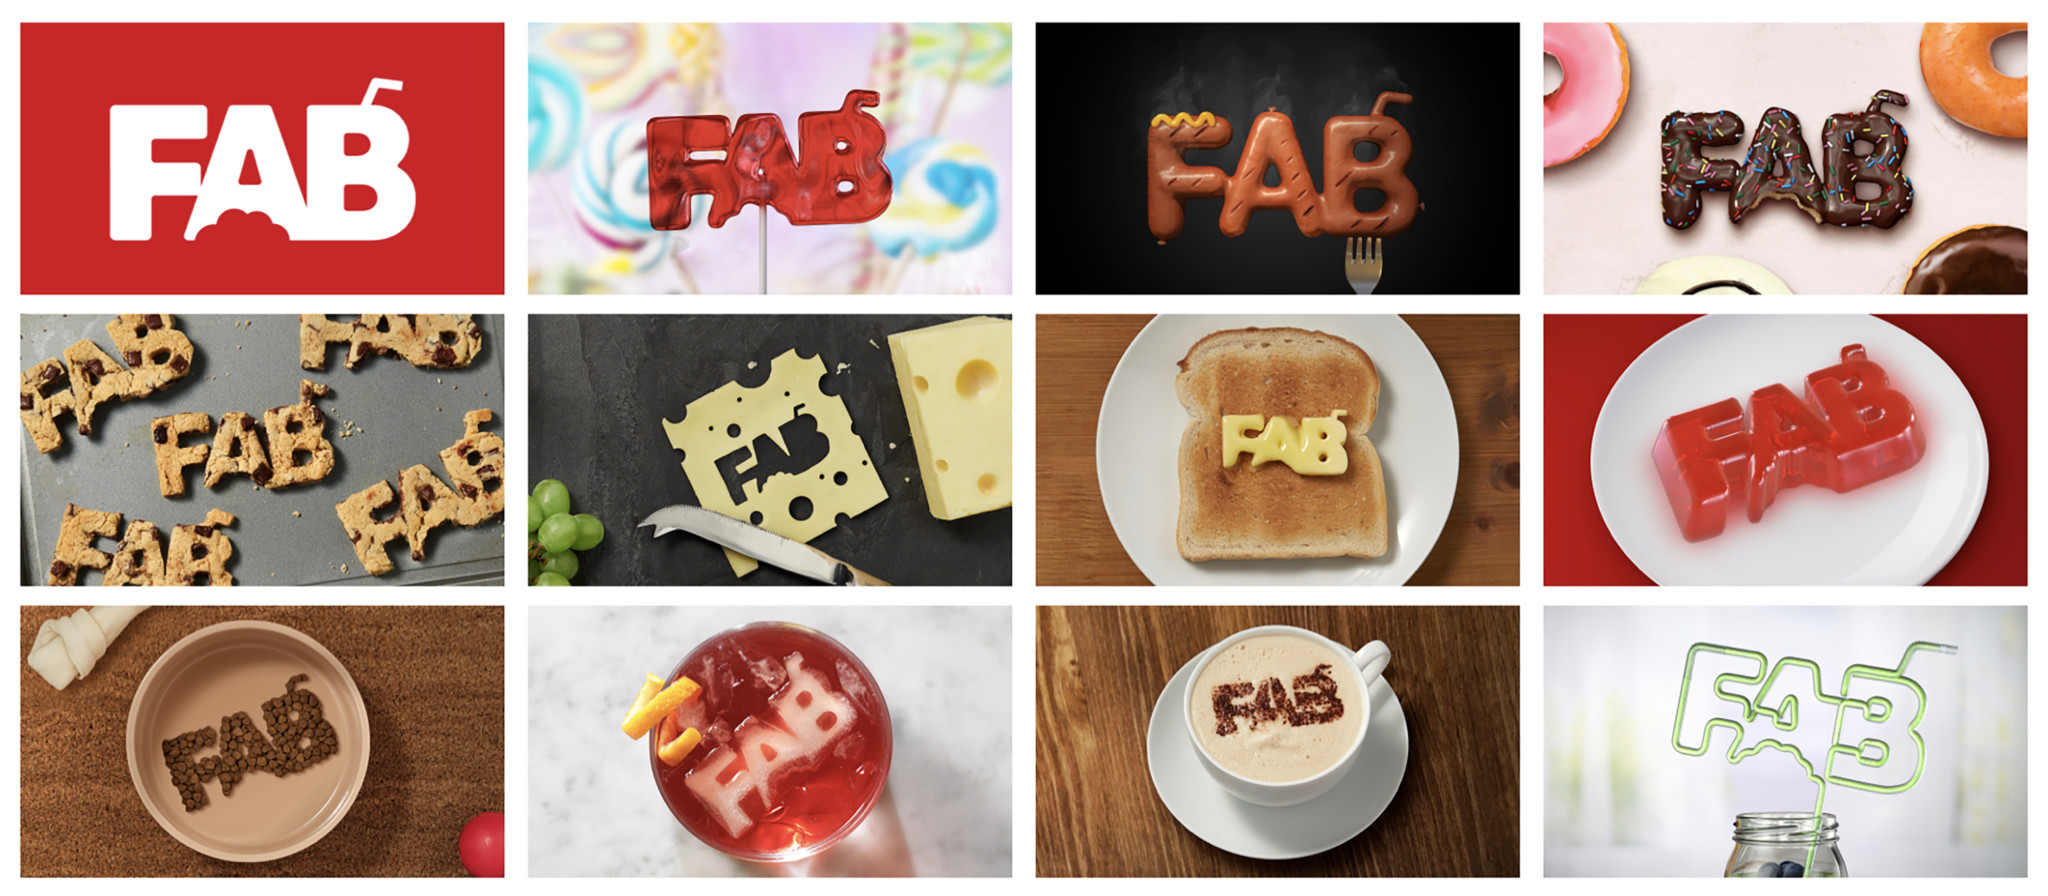 FAB IDENTS ONE.001 image